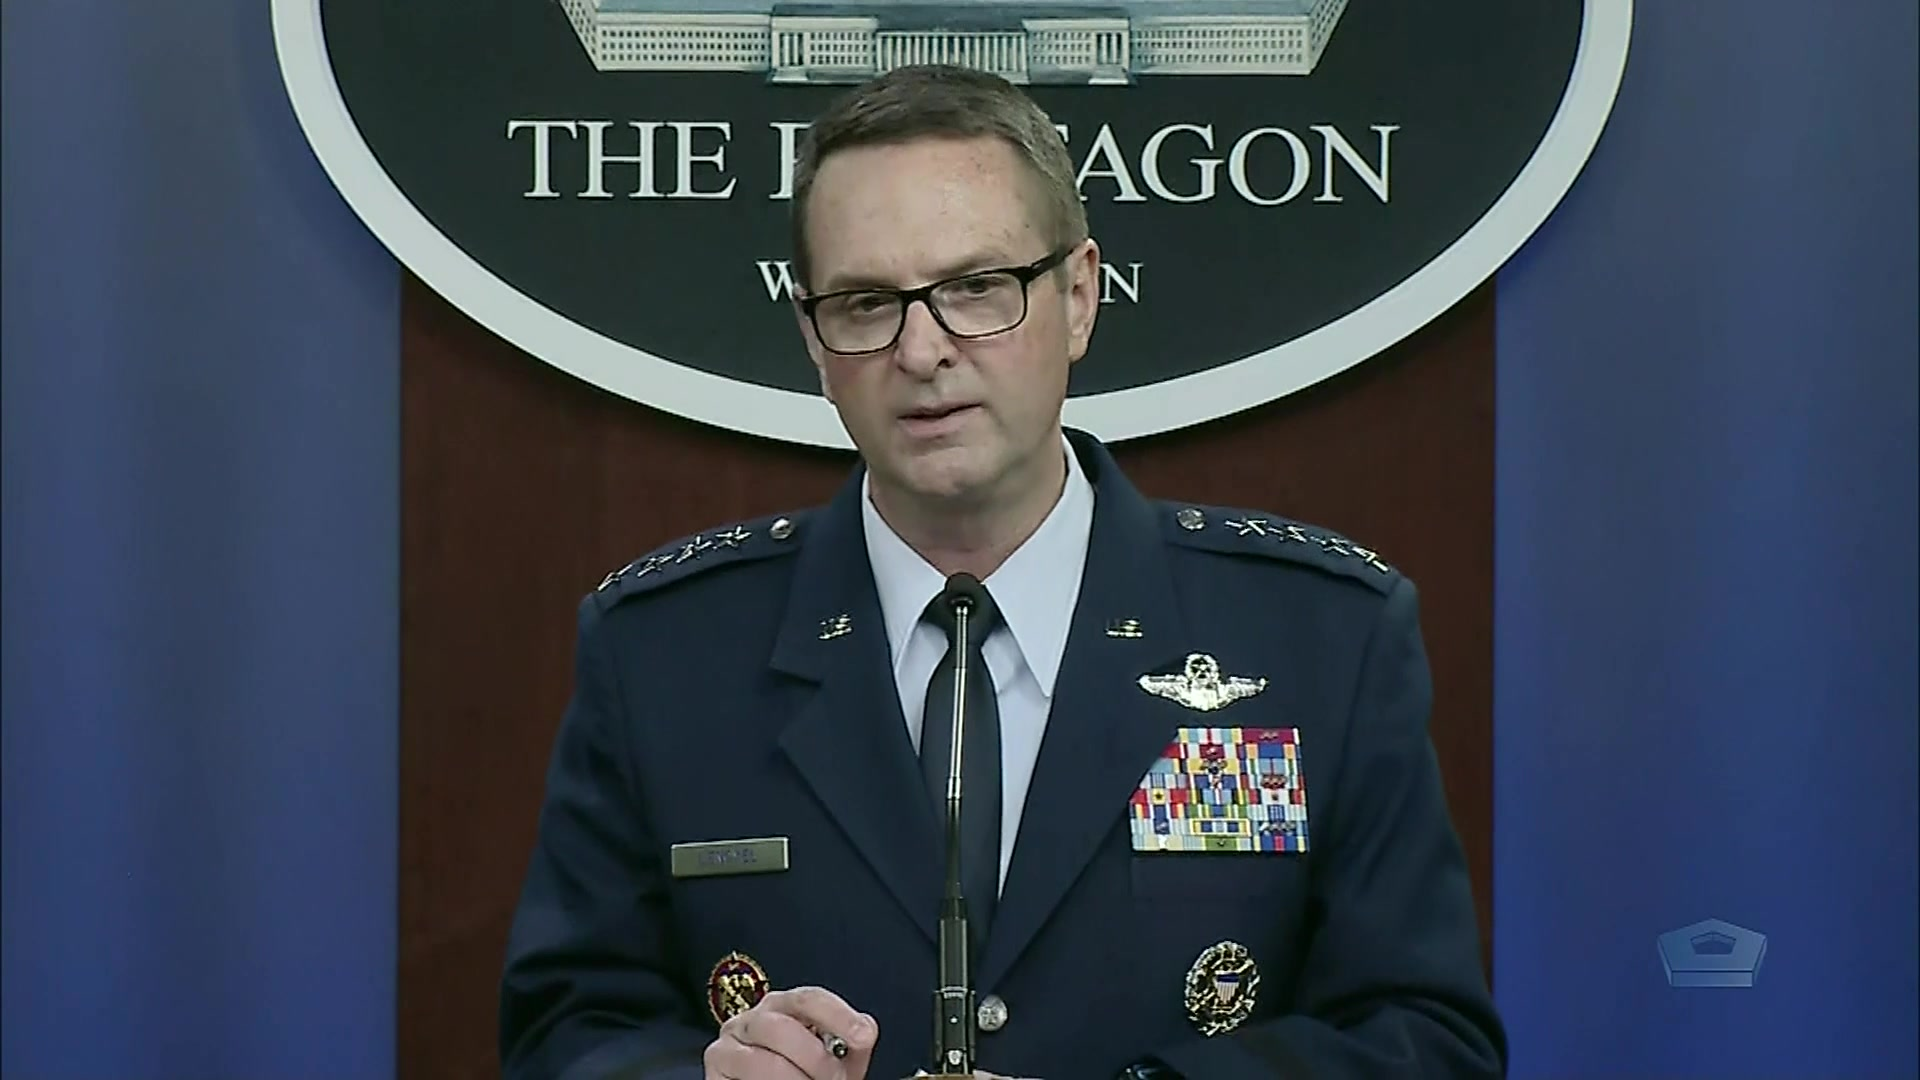 An Air Force general stands at a lectern.